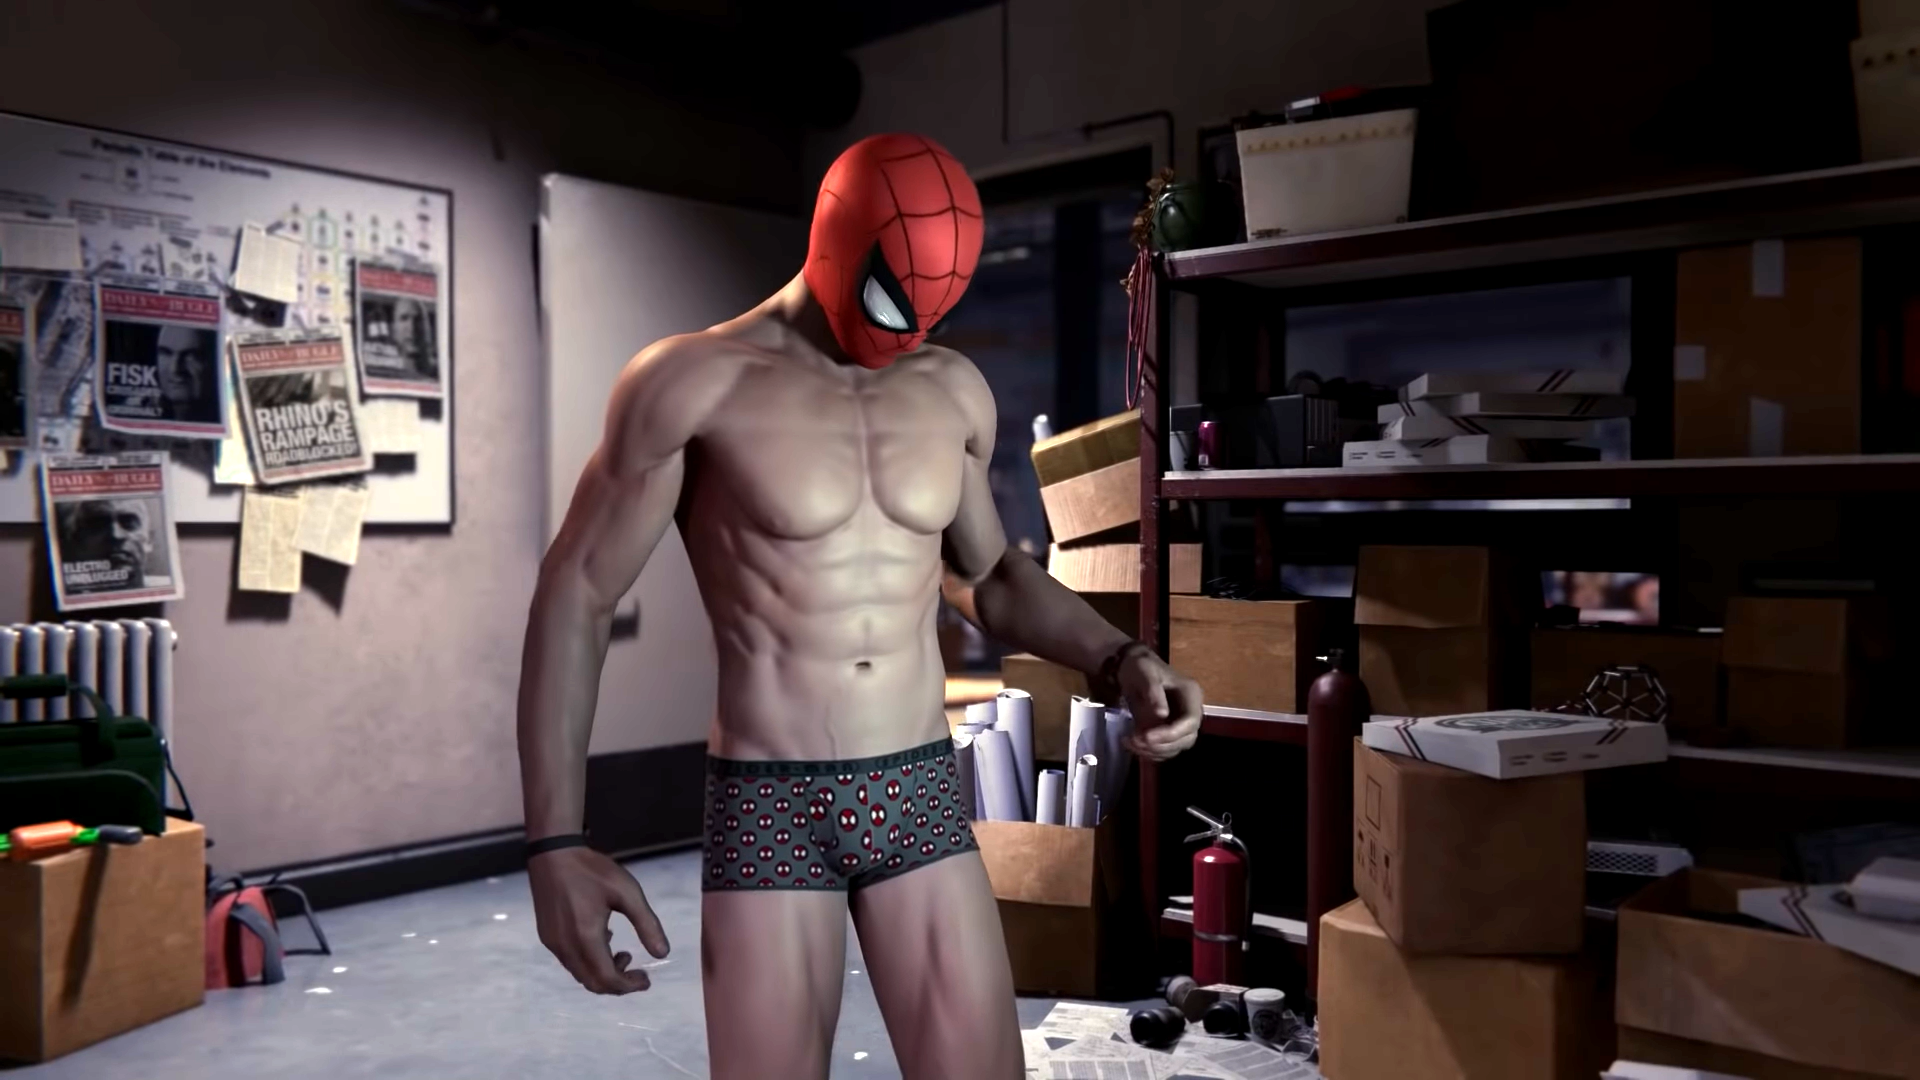 The Only Artist Ever To Sculpt Spider-Man's Nipples In A Video Game Wanted Them To Be 'Hot,' But Not Distracting